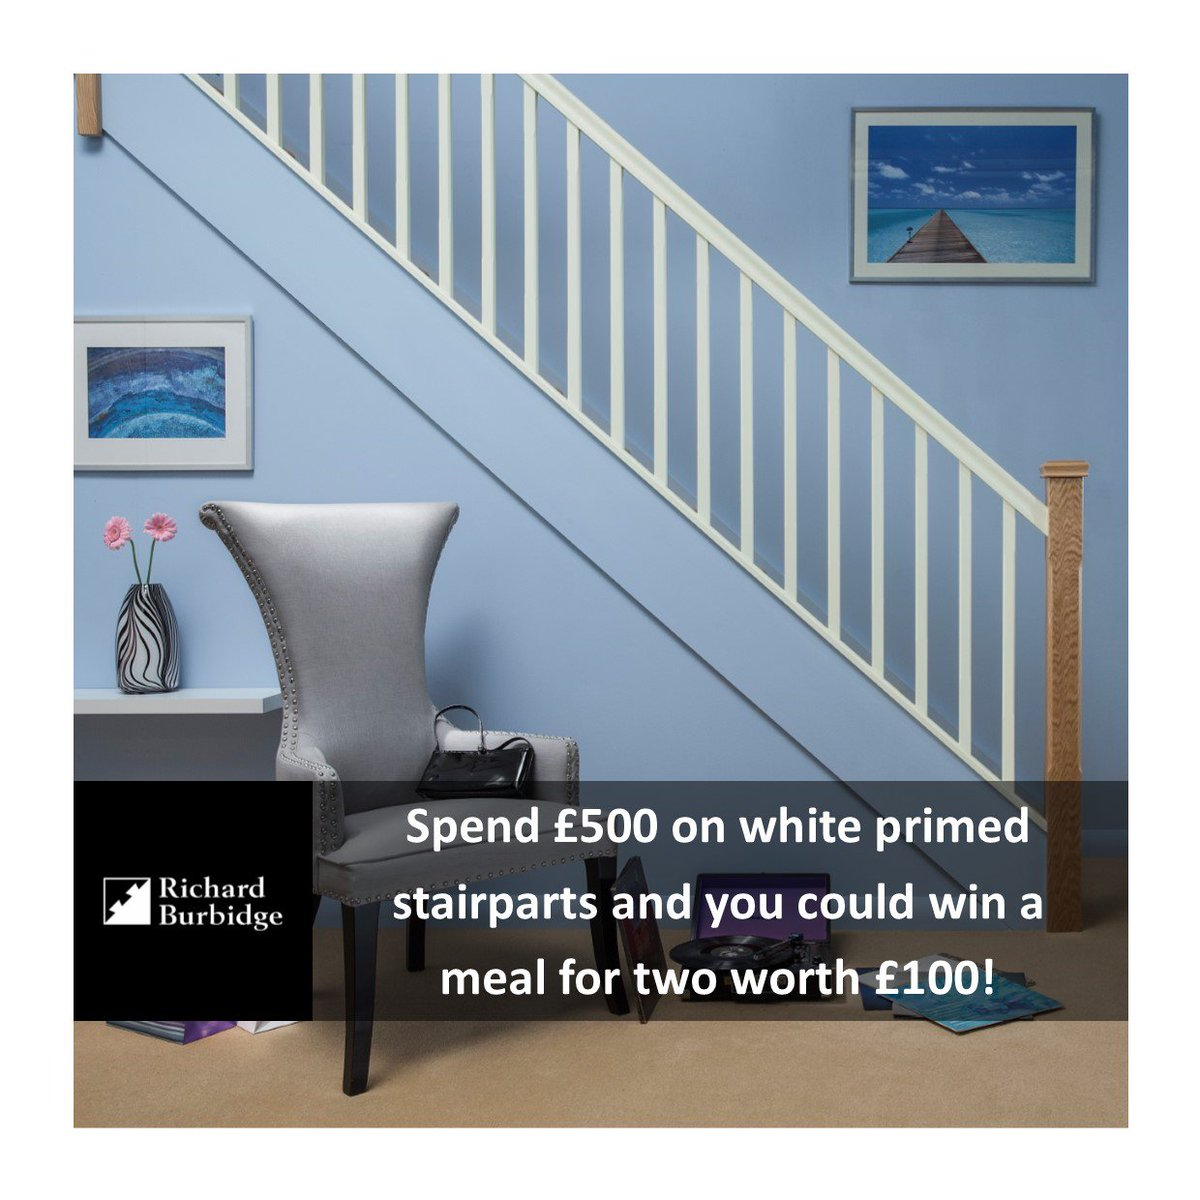 White Primed Stairparts Are Ideal For Painting Whatever Colour You Like So  Your Stairs Can Be Truly Unique! You Can Also Take Part In Our Great ...